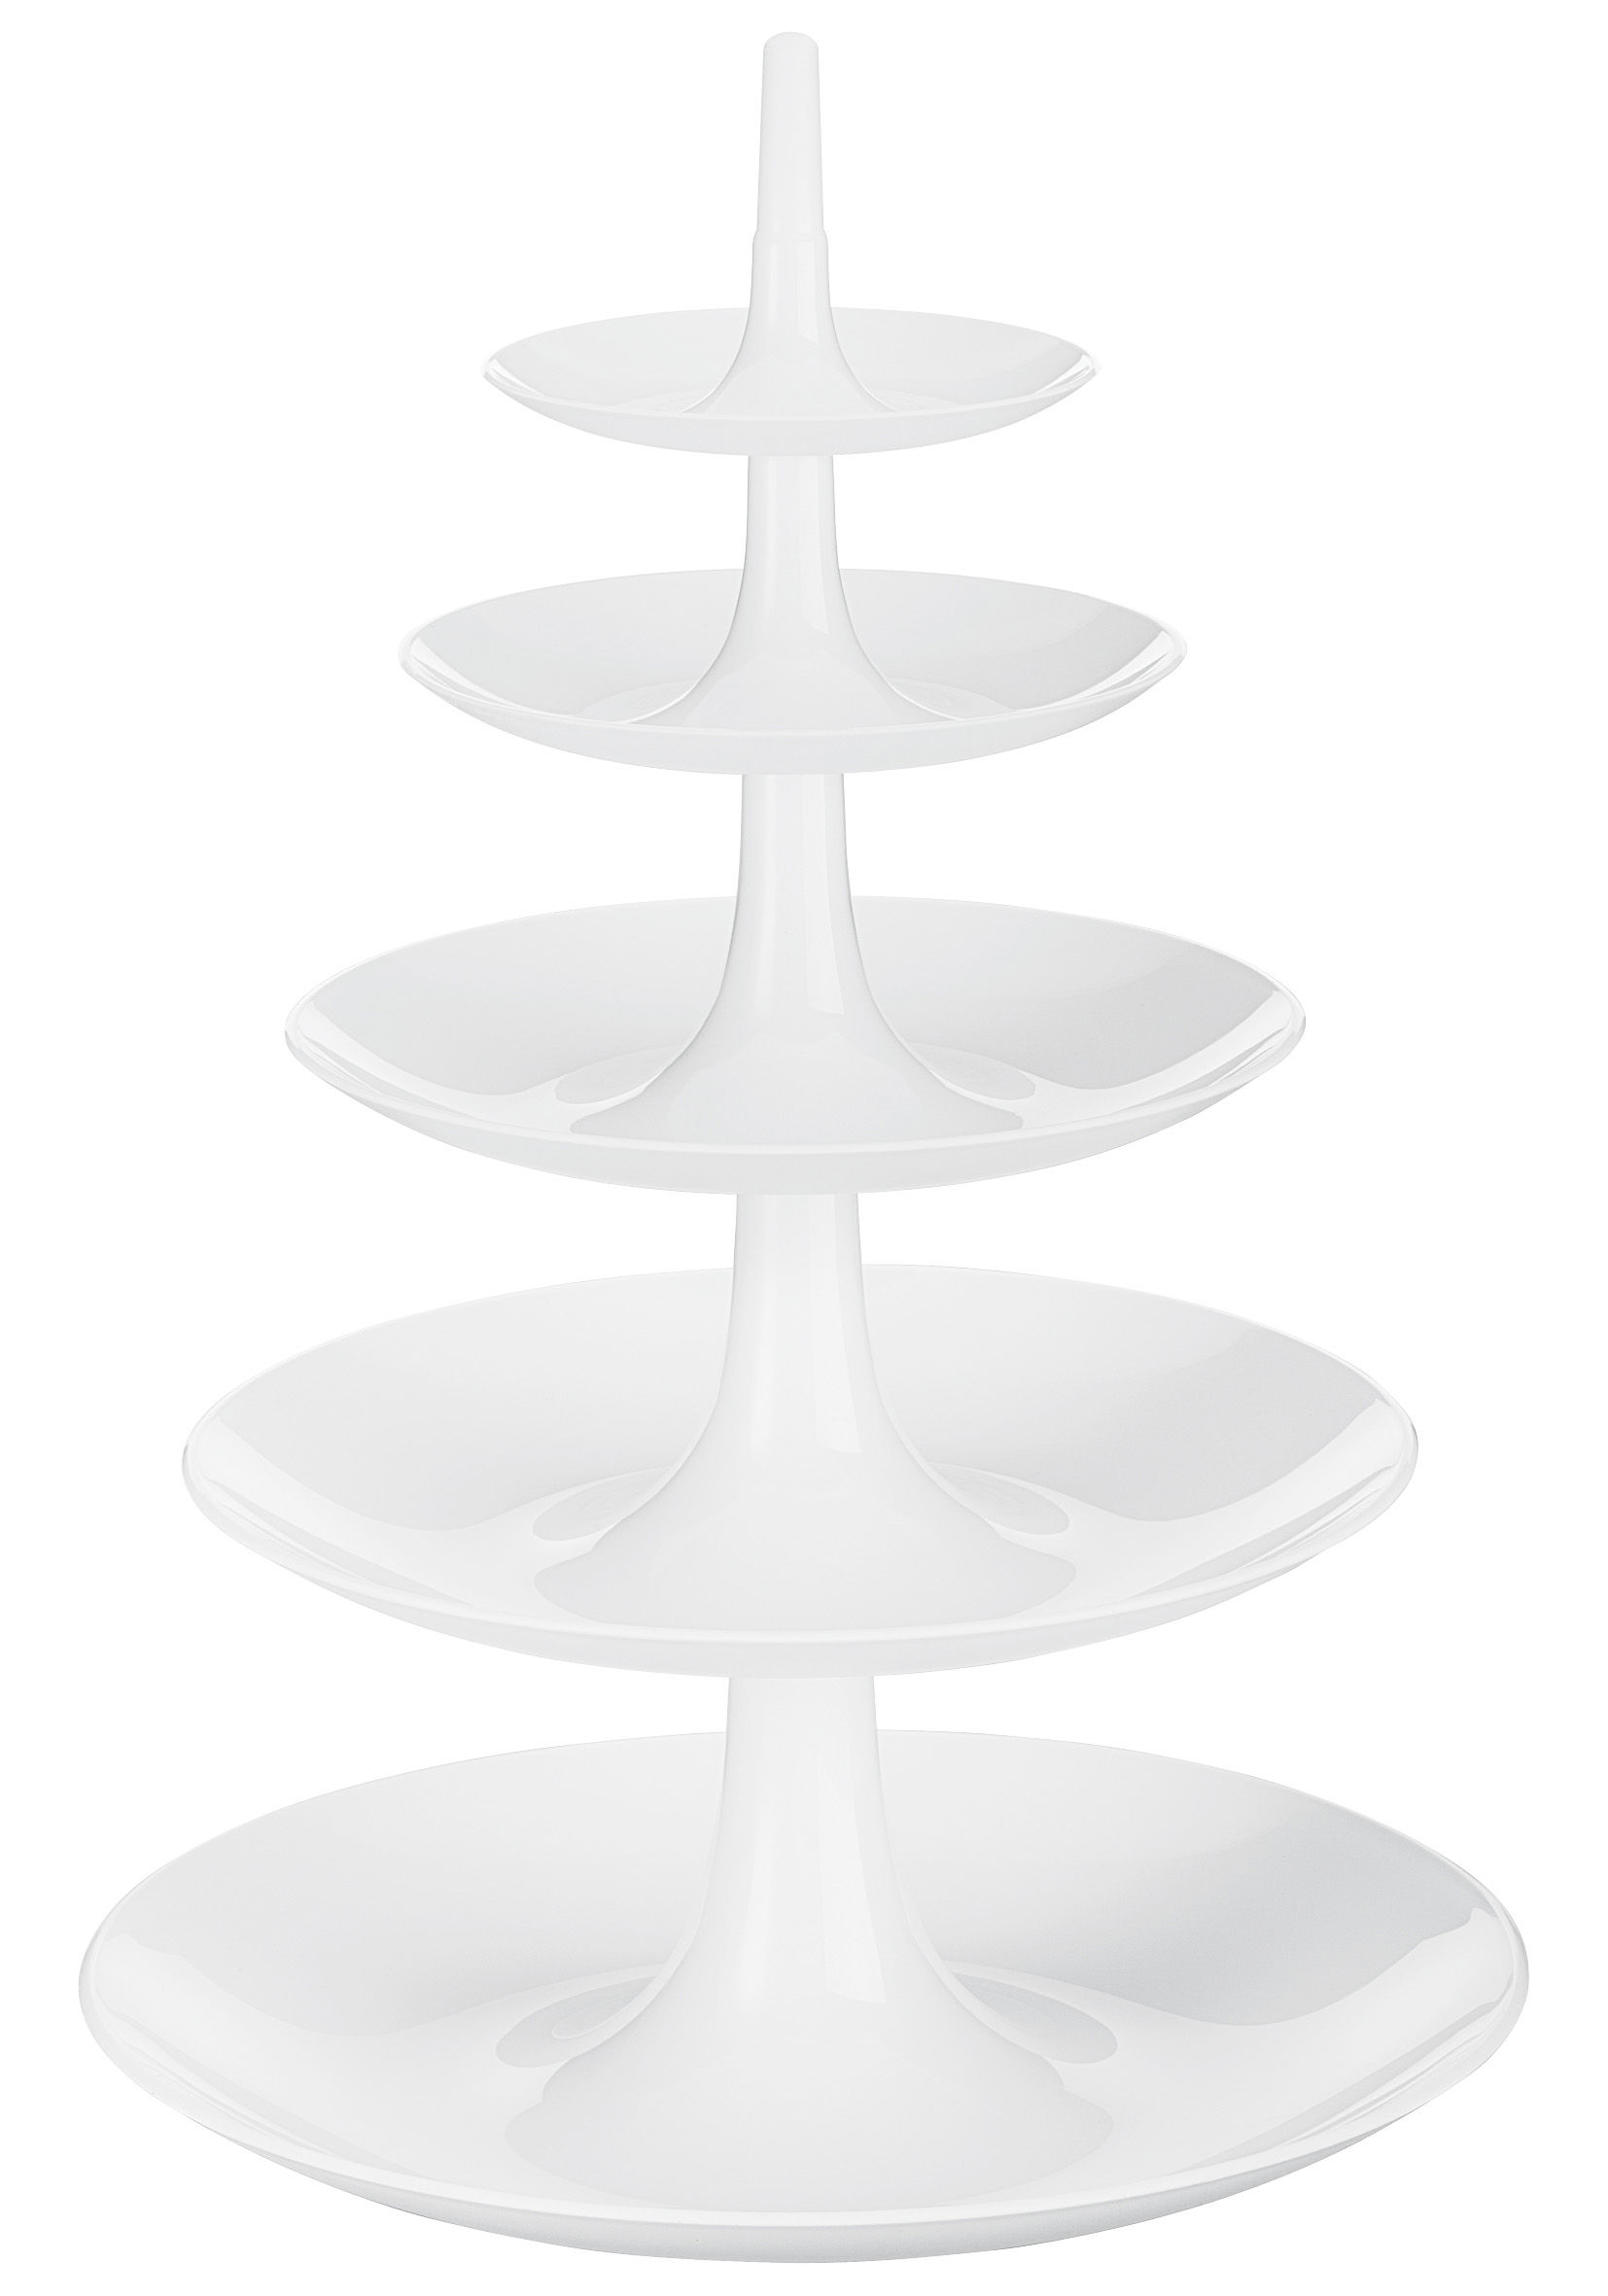 Kitchenware - Cool Kitchen Gadgets - Babell XXL Presentation dish by Koziol - Solid white - Polycarbonate